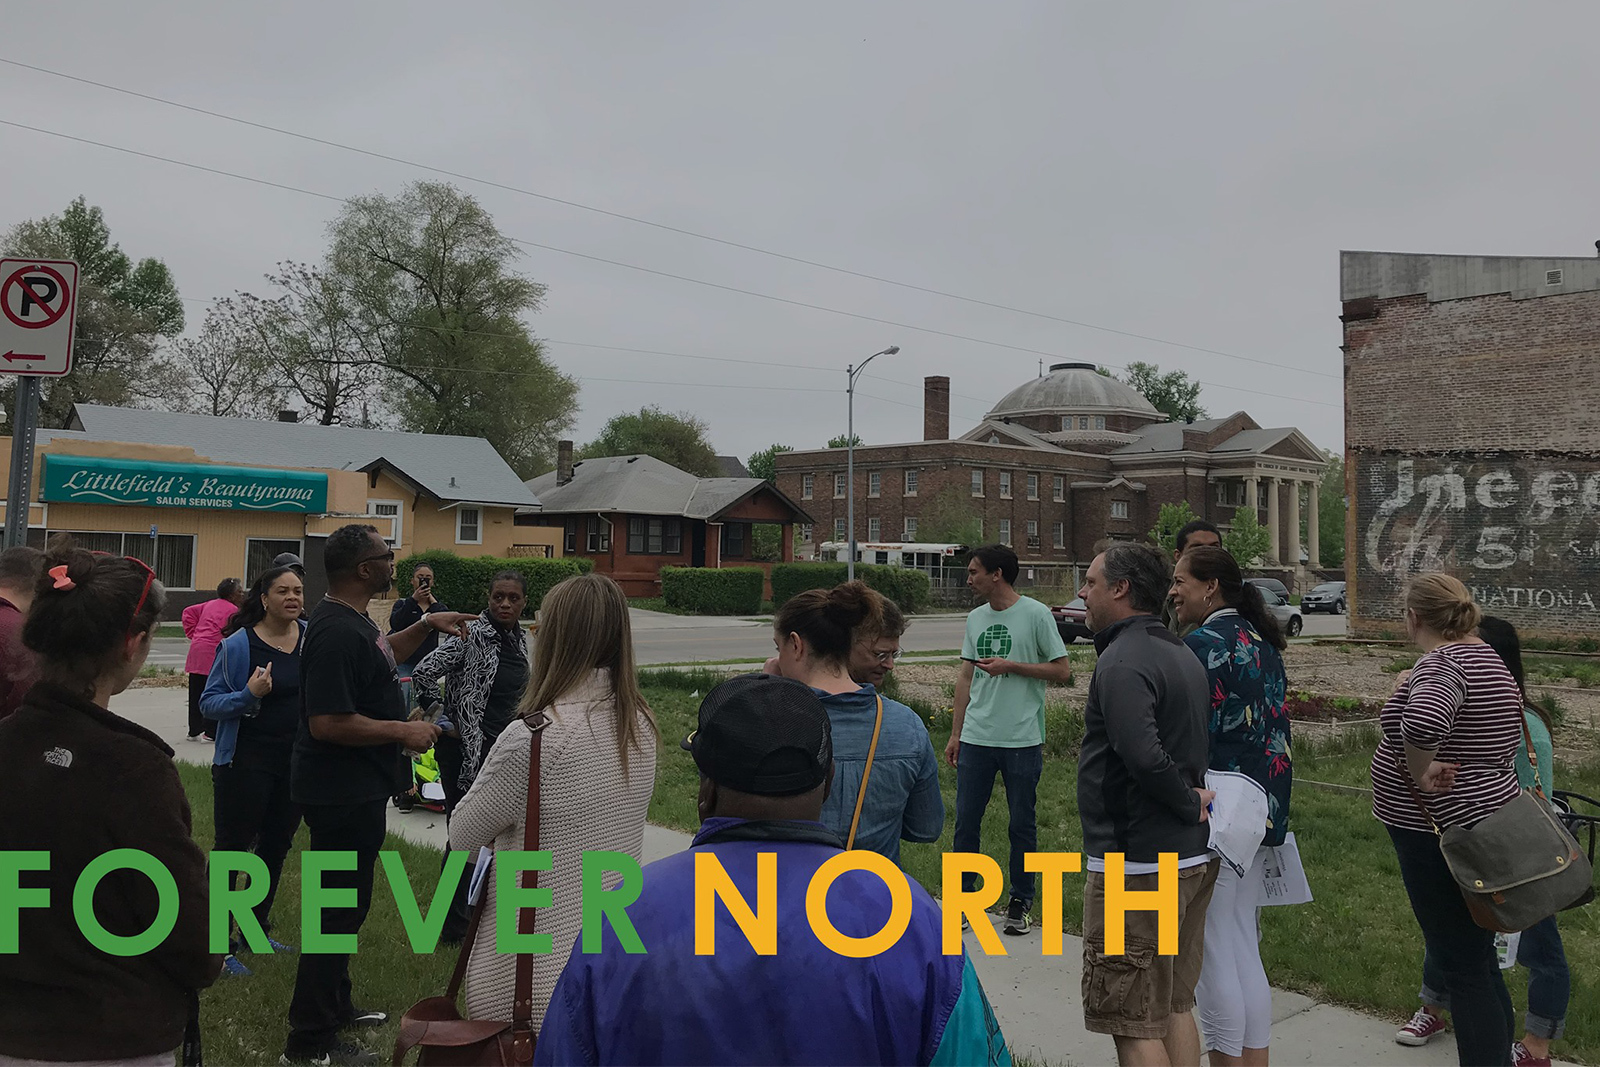 Forever north